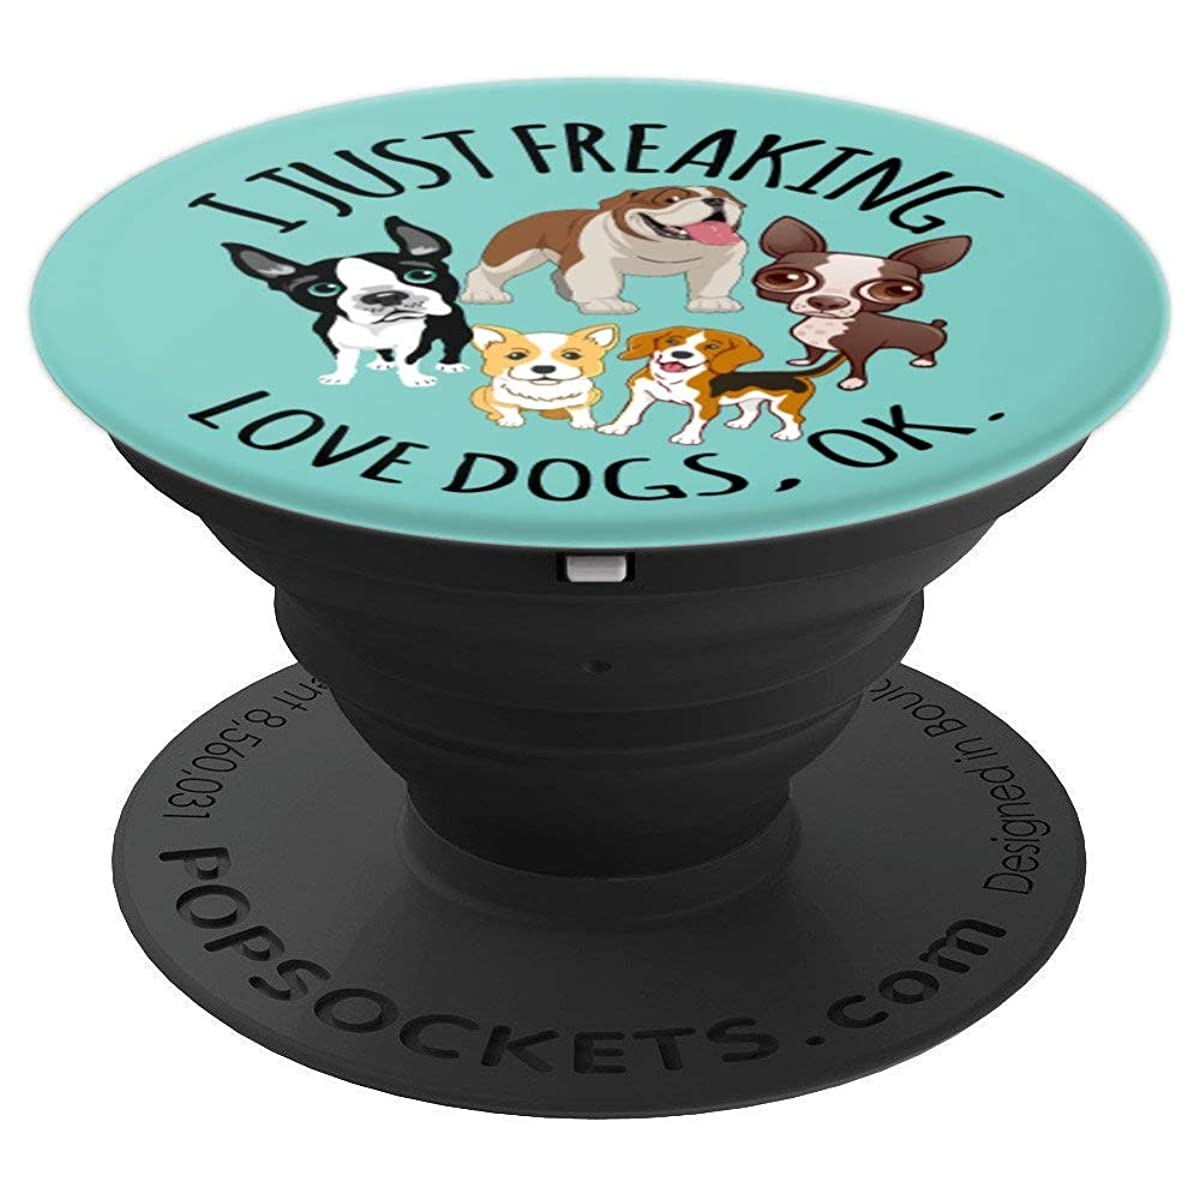 Cute funny dog lover gift - I just freaking love dogs ok - PopSockets Grip and Stand for Phones and Tablets